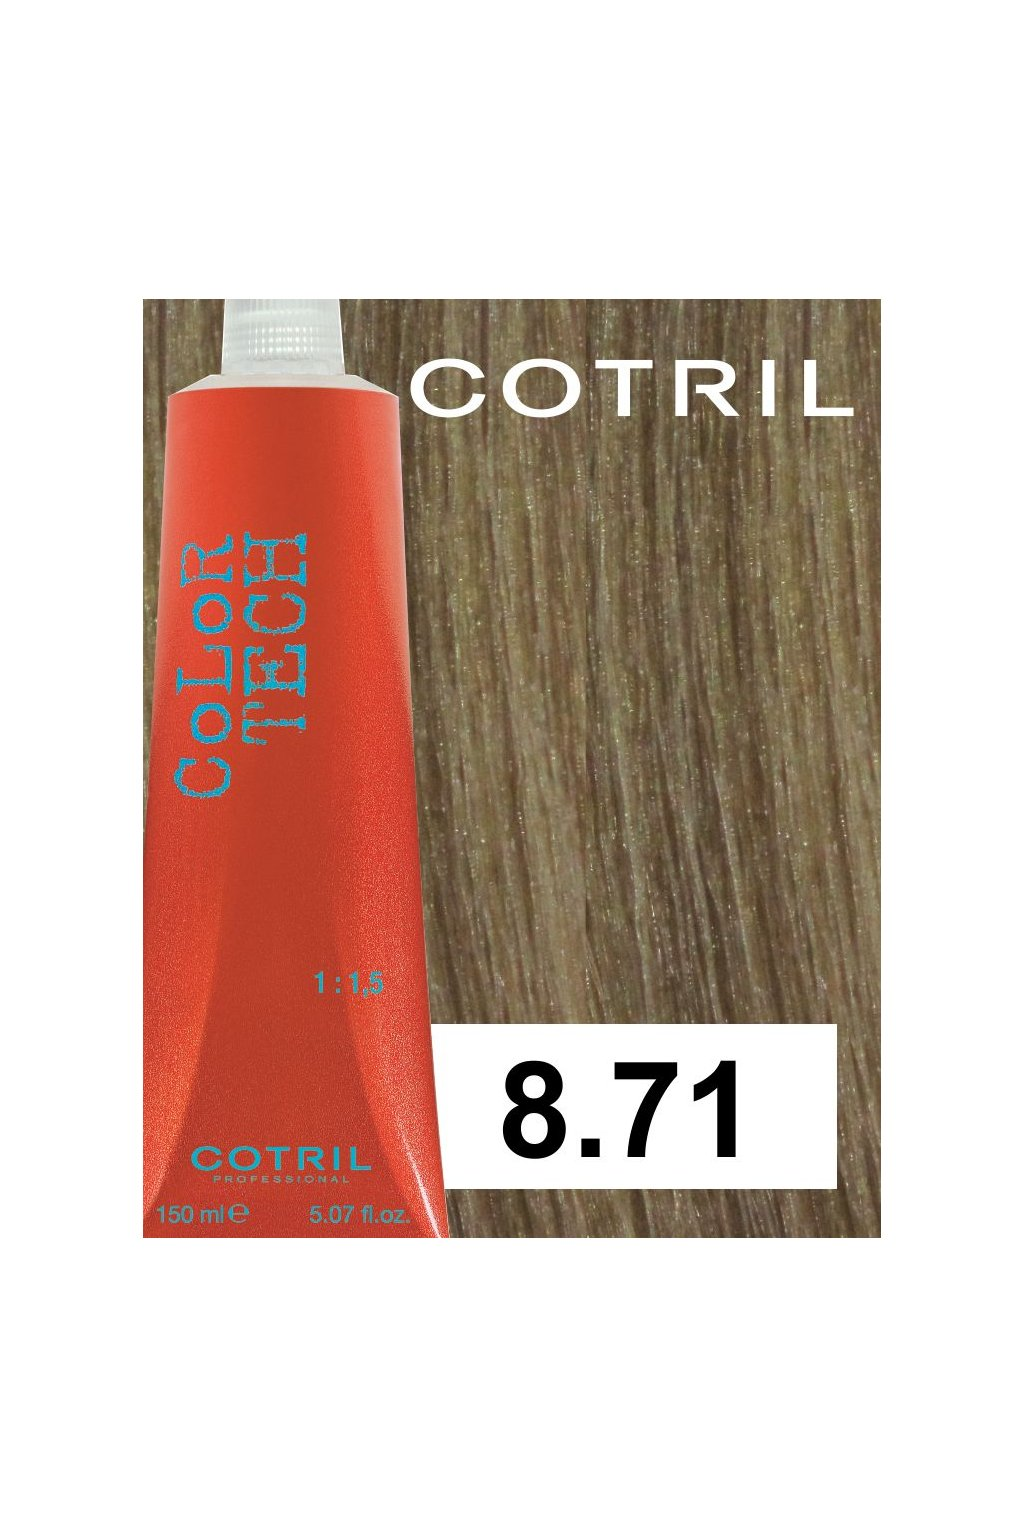 8 71 ct cotril